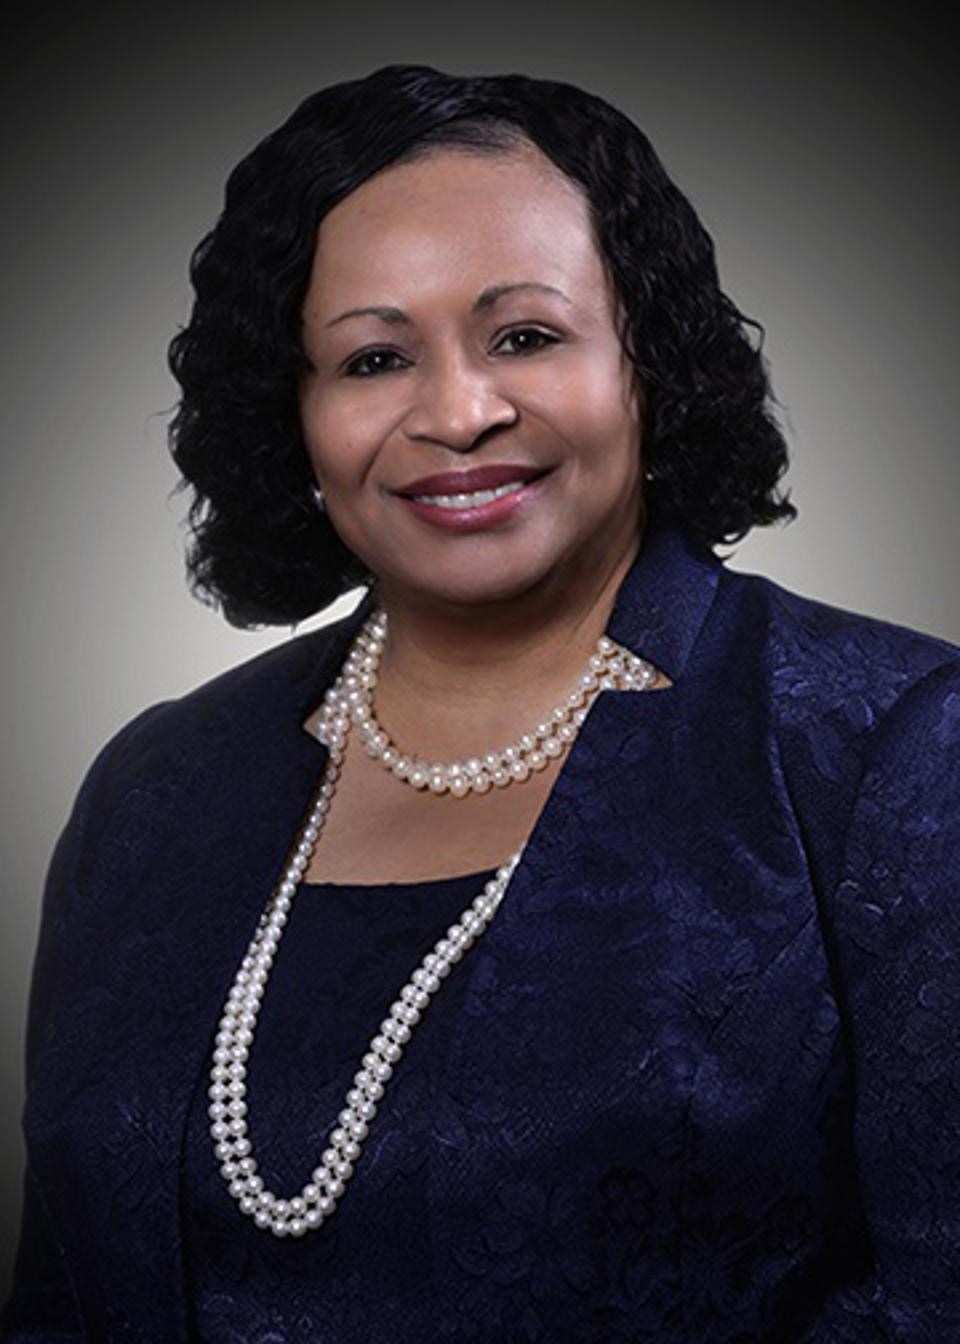 Barbara Turner, president and chief executive officer, Ohio National Financial Services